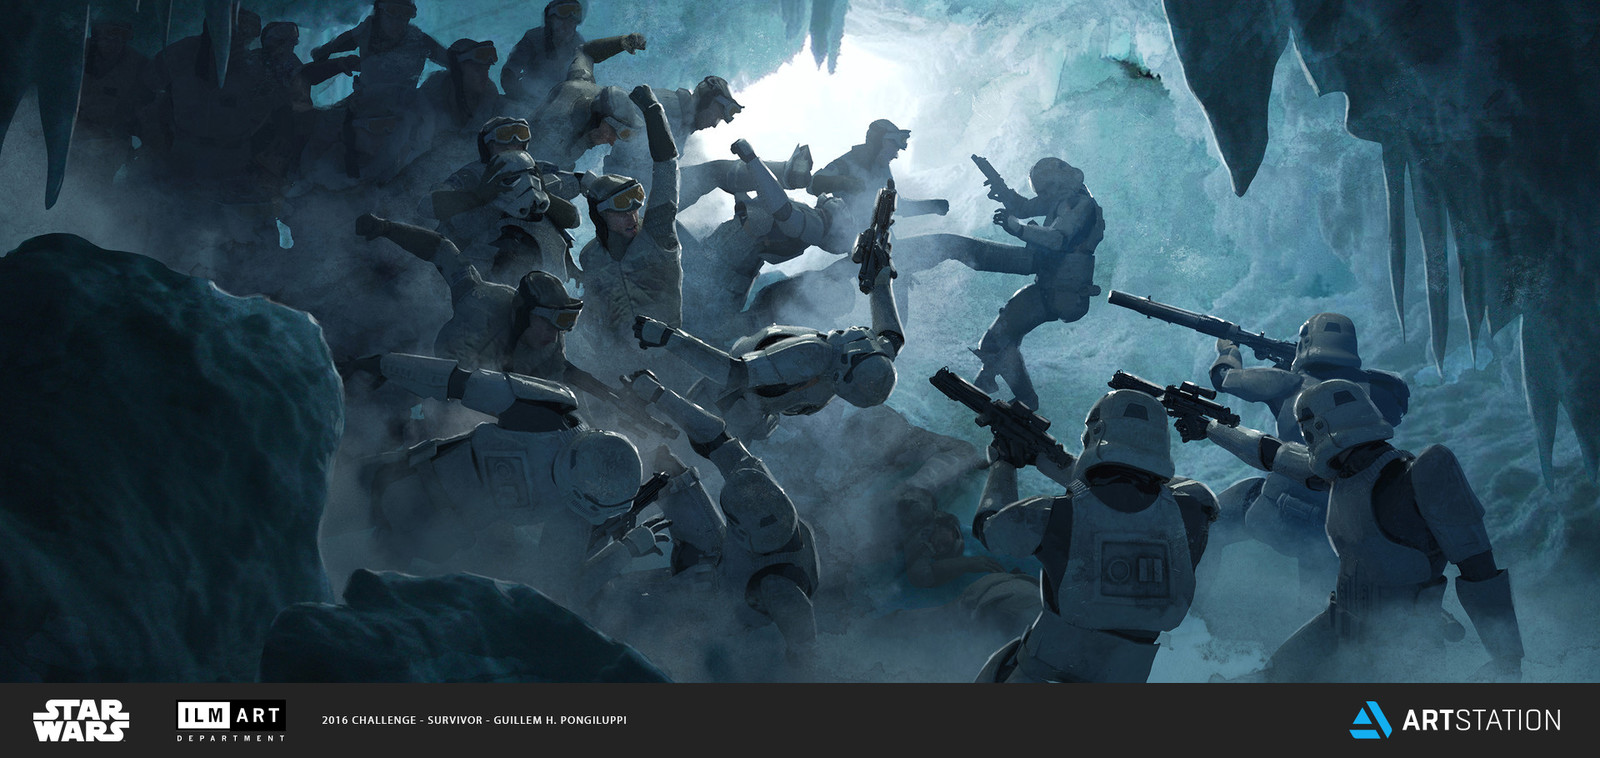 ILM Art Department Challenge - The Job